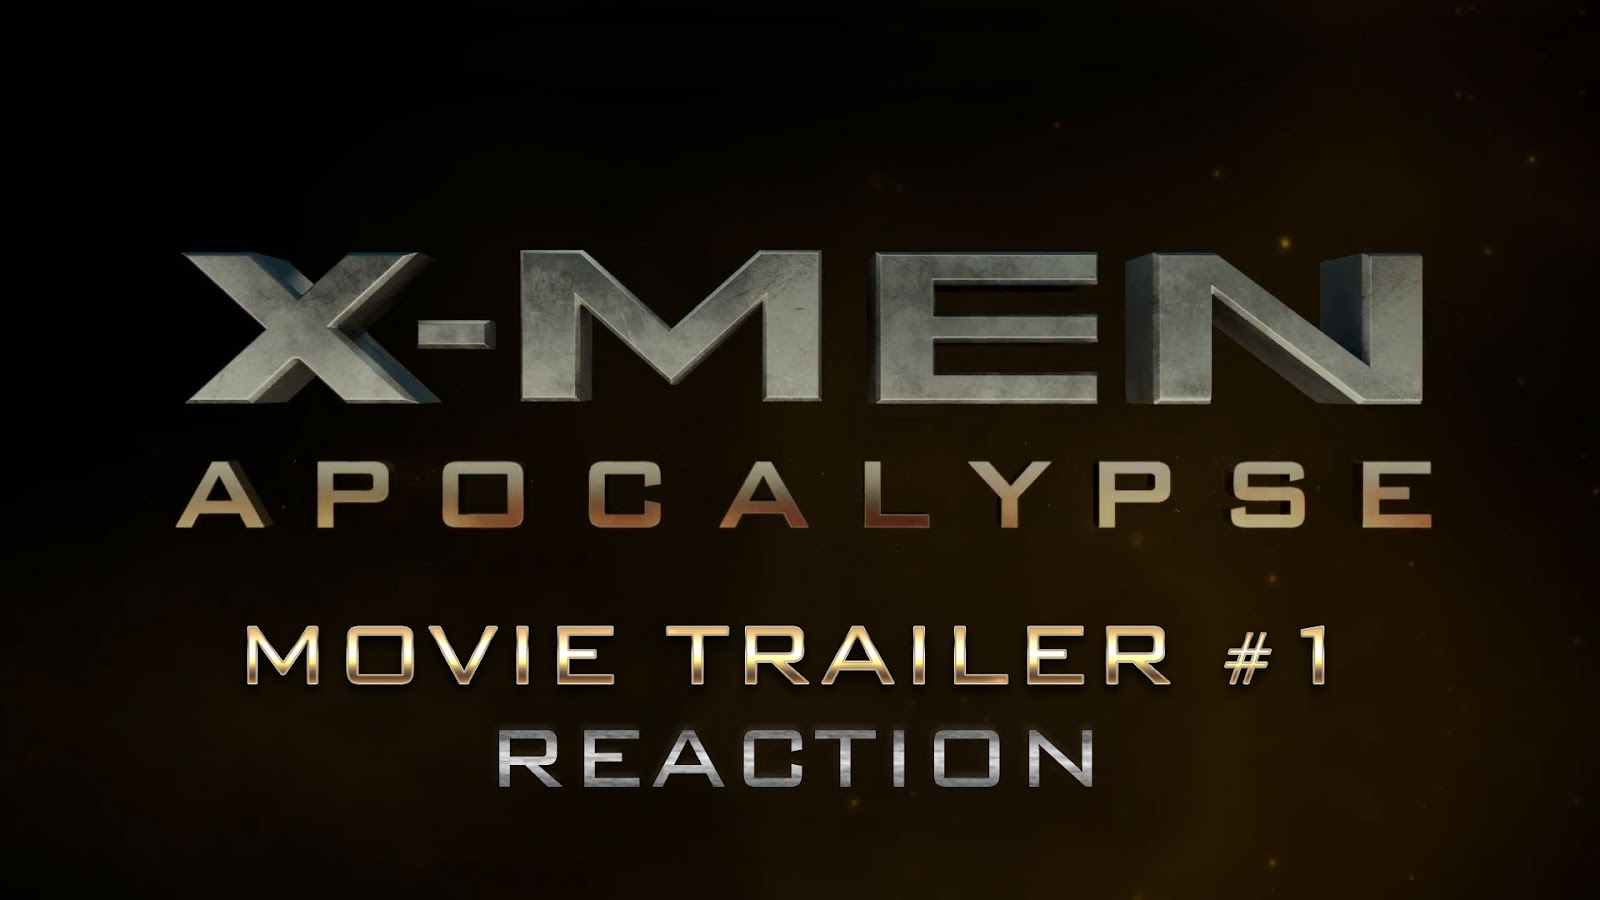 reaction to trailer for X-Men: Apocalypse